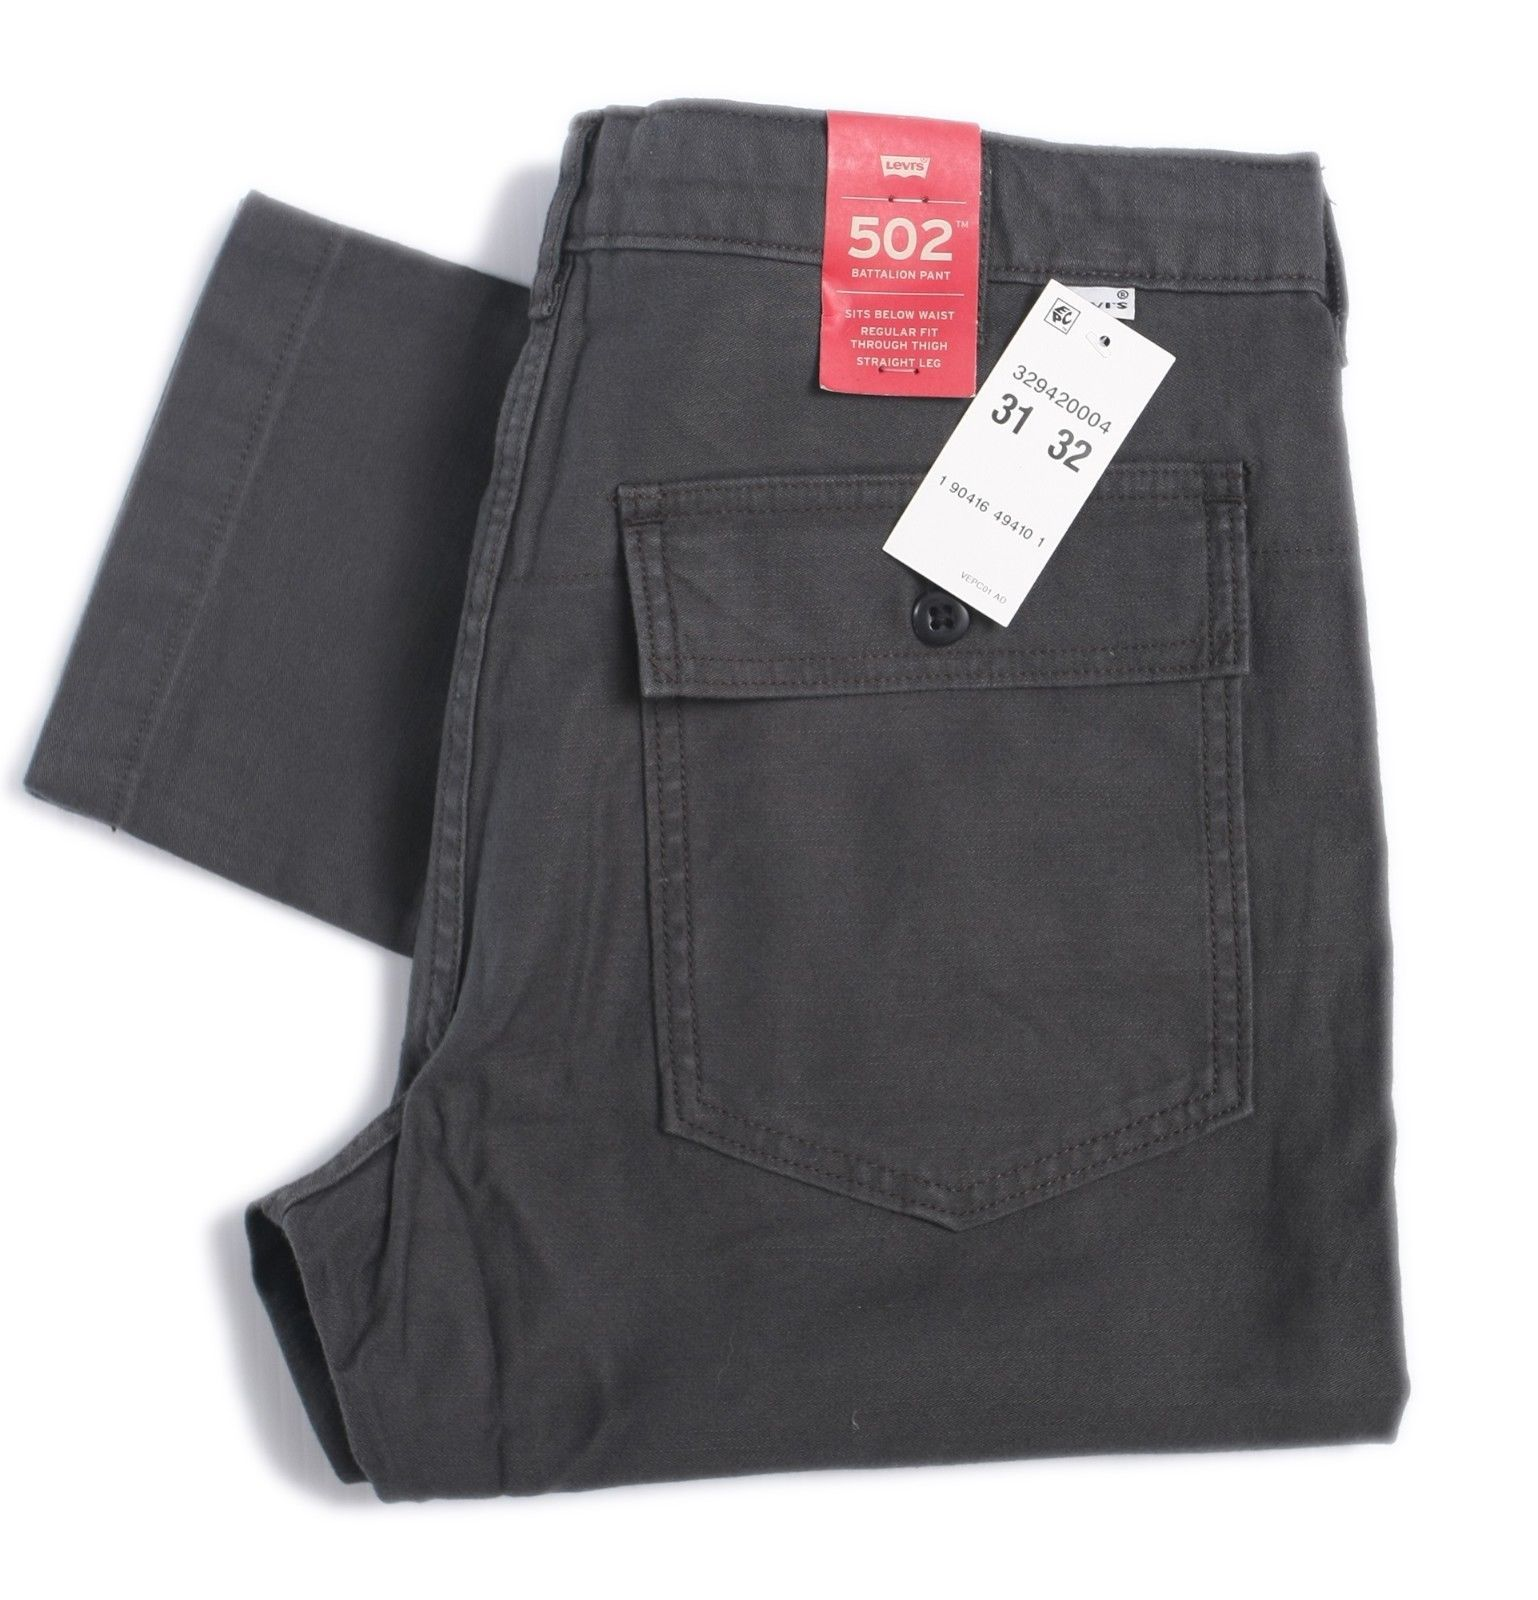 Levis Mens 502 Battalion Pant Regular Fit Straight Leg Pockets Black 329420004